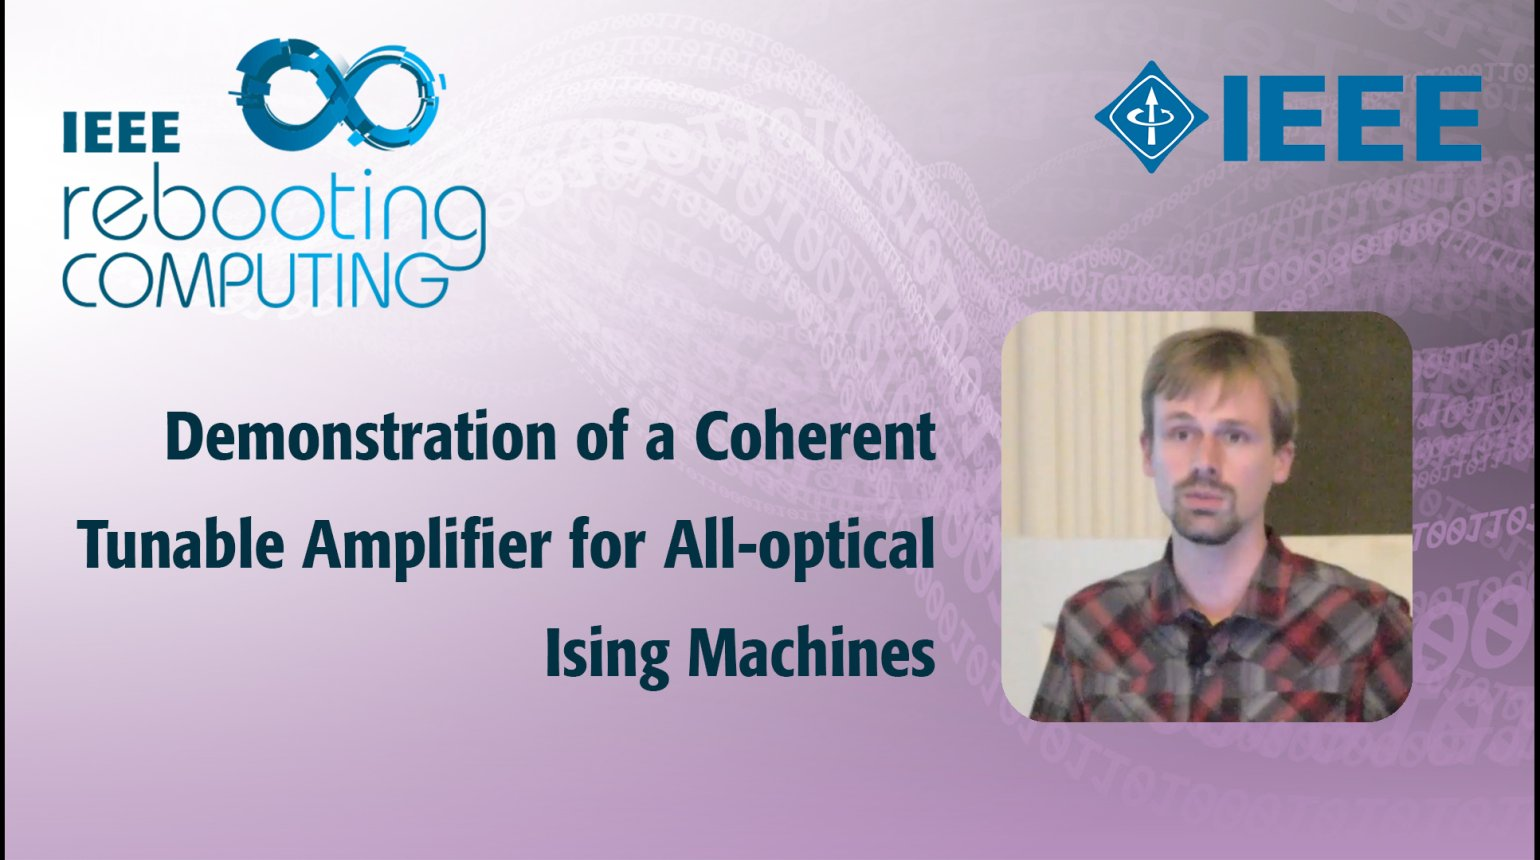 Demonstration of a Coherent Tunable Amplifier for All-Optical Ising Machines: IEEE Rebooting Computing 2017